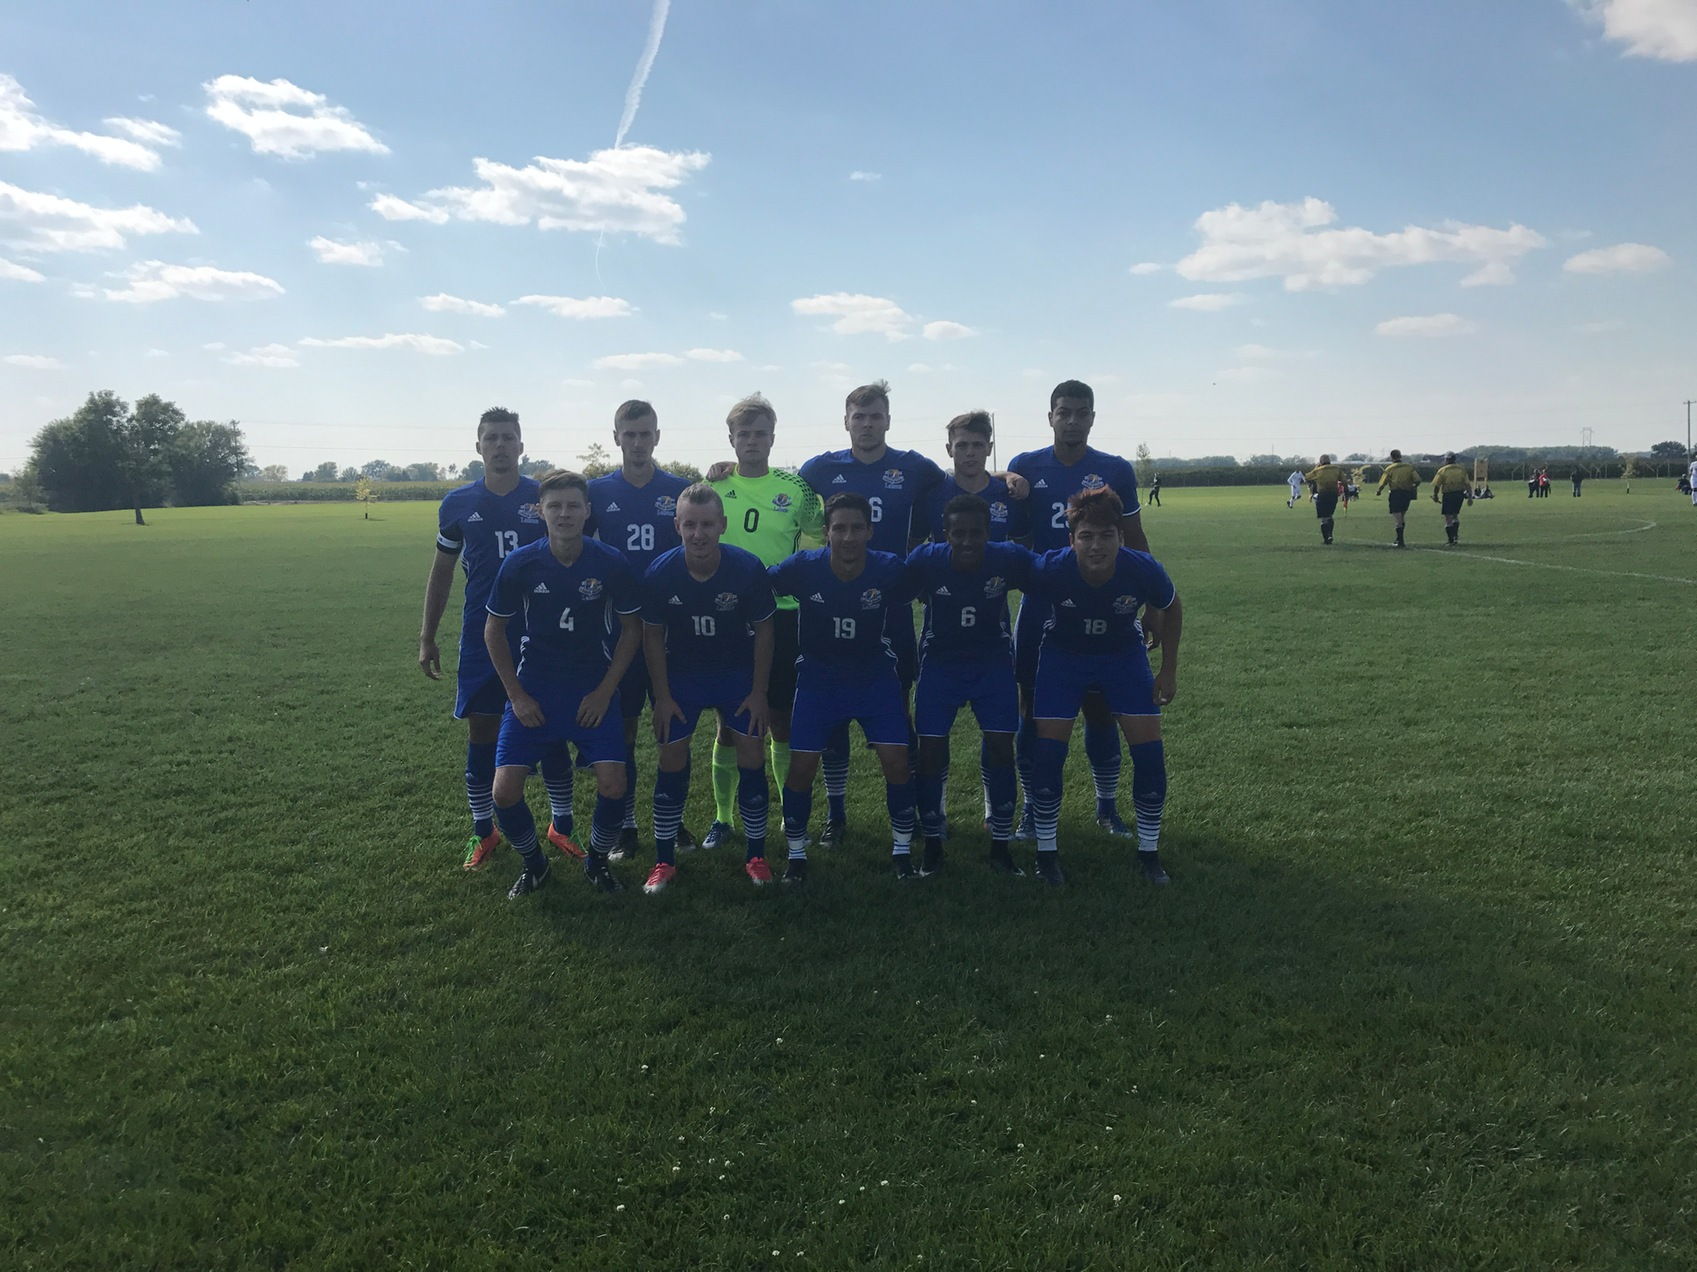 Lakers win 1-0 at Central Community College in Columbus, Nebraska